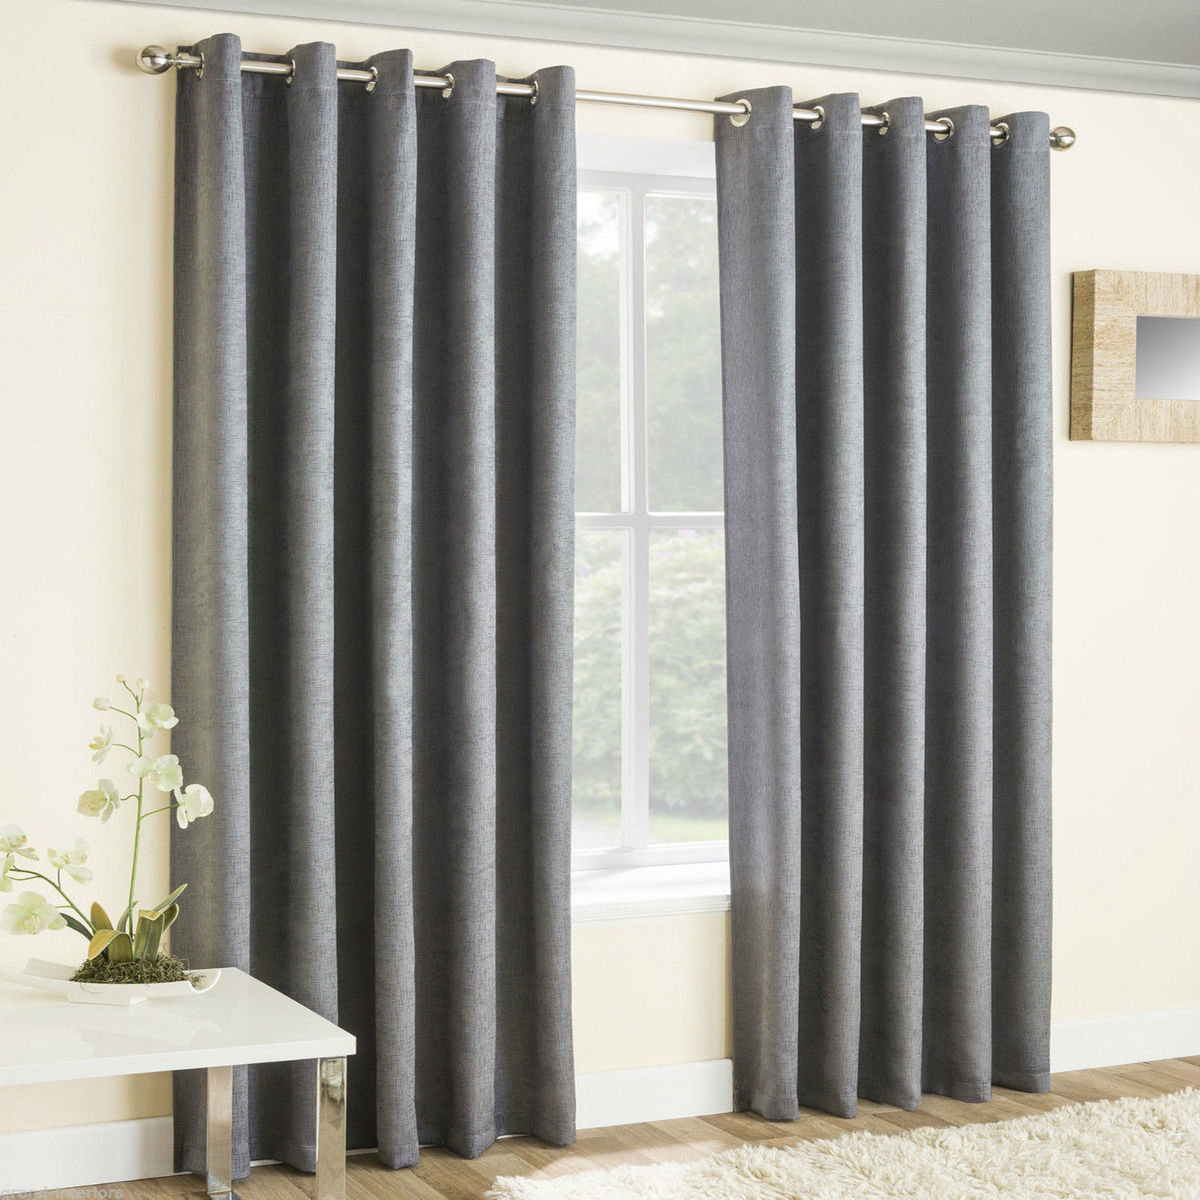 Silver Metallic Shimmer Curtains Blackout Eyelet Ring Top With Free Tie Backs